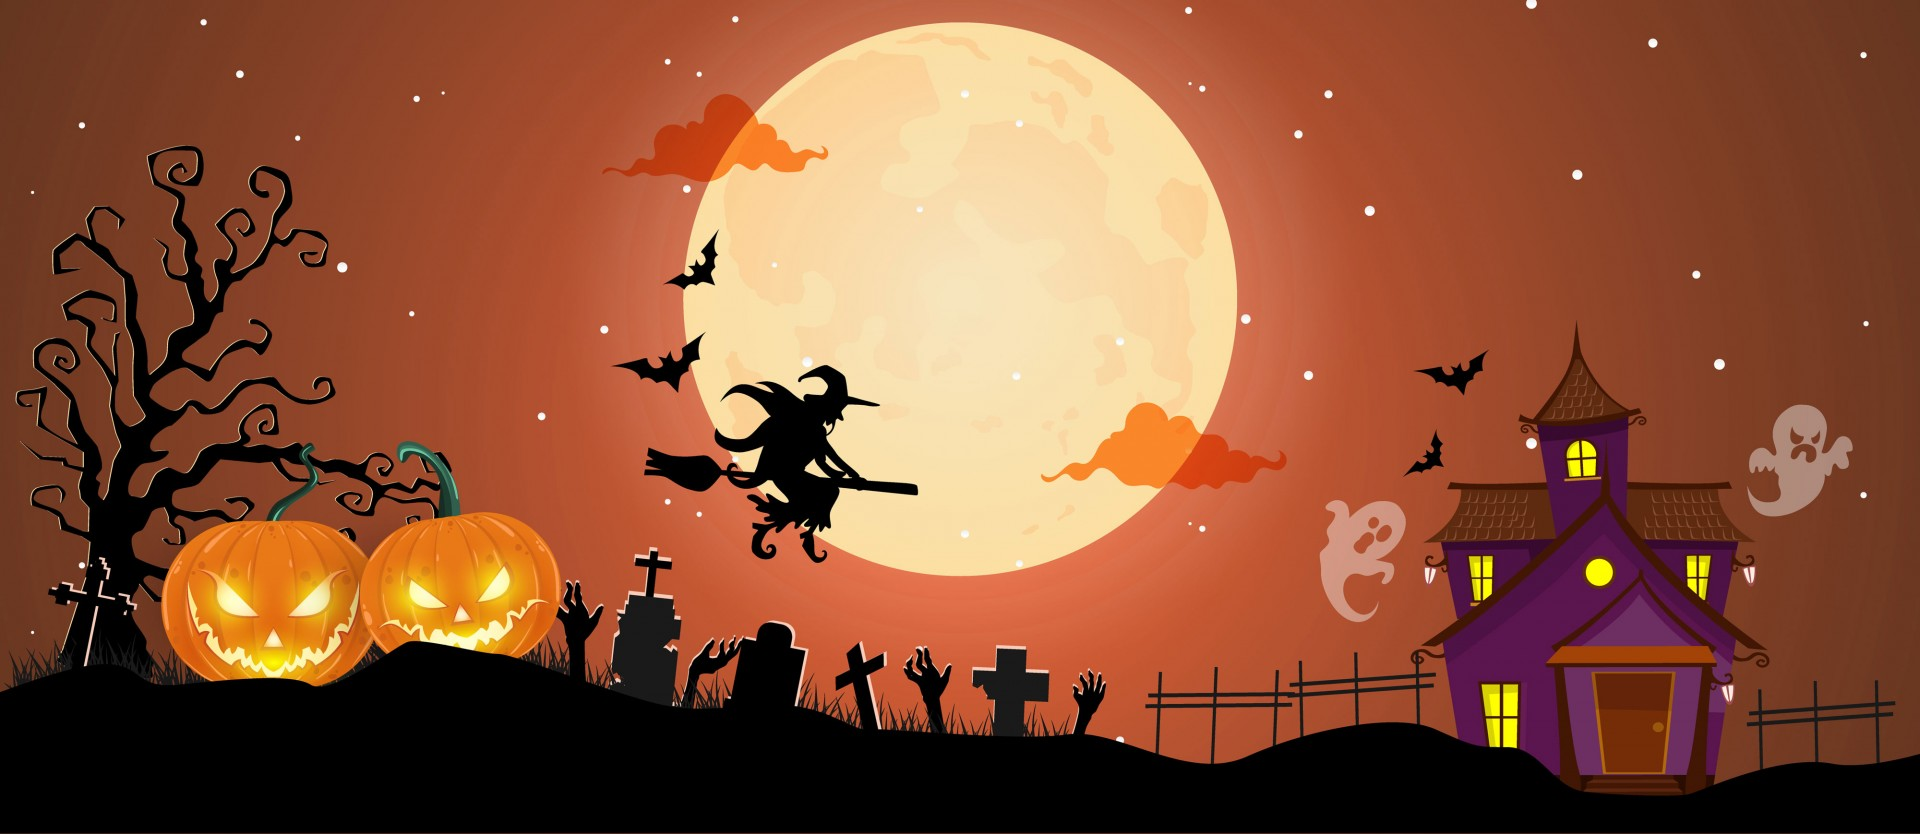 Halloween, All Saints' Day, Dia de los Muertos: traditions from the world to discover on the road